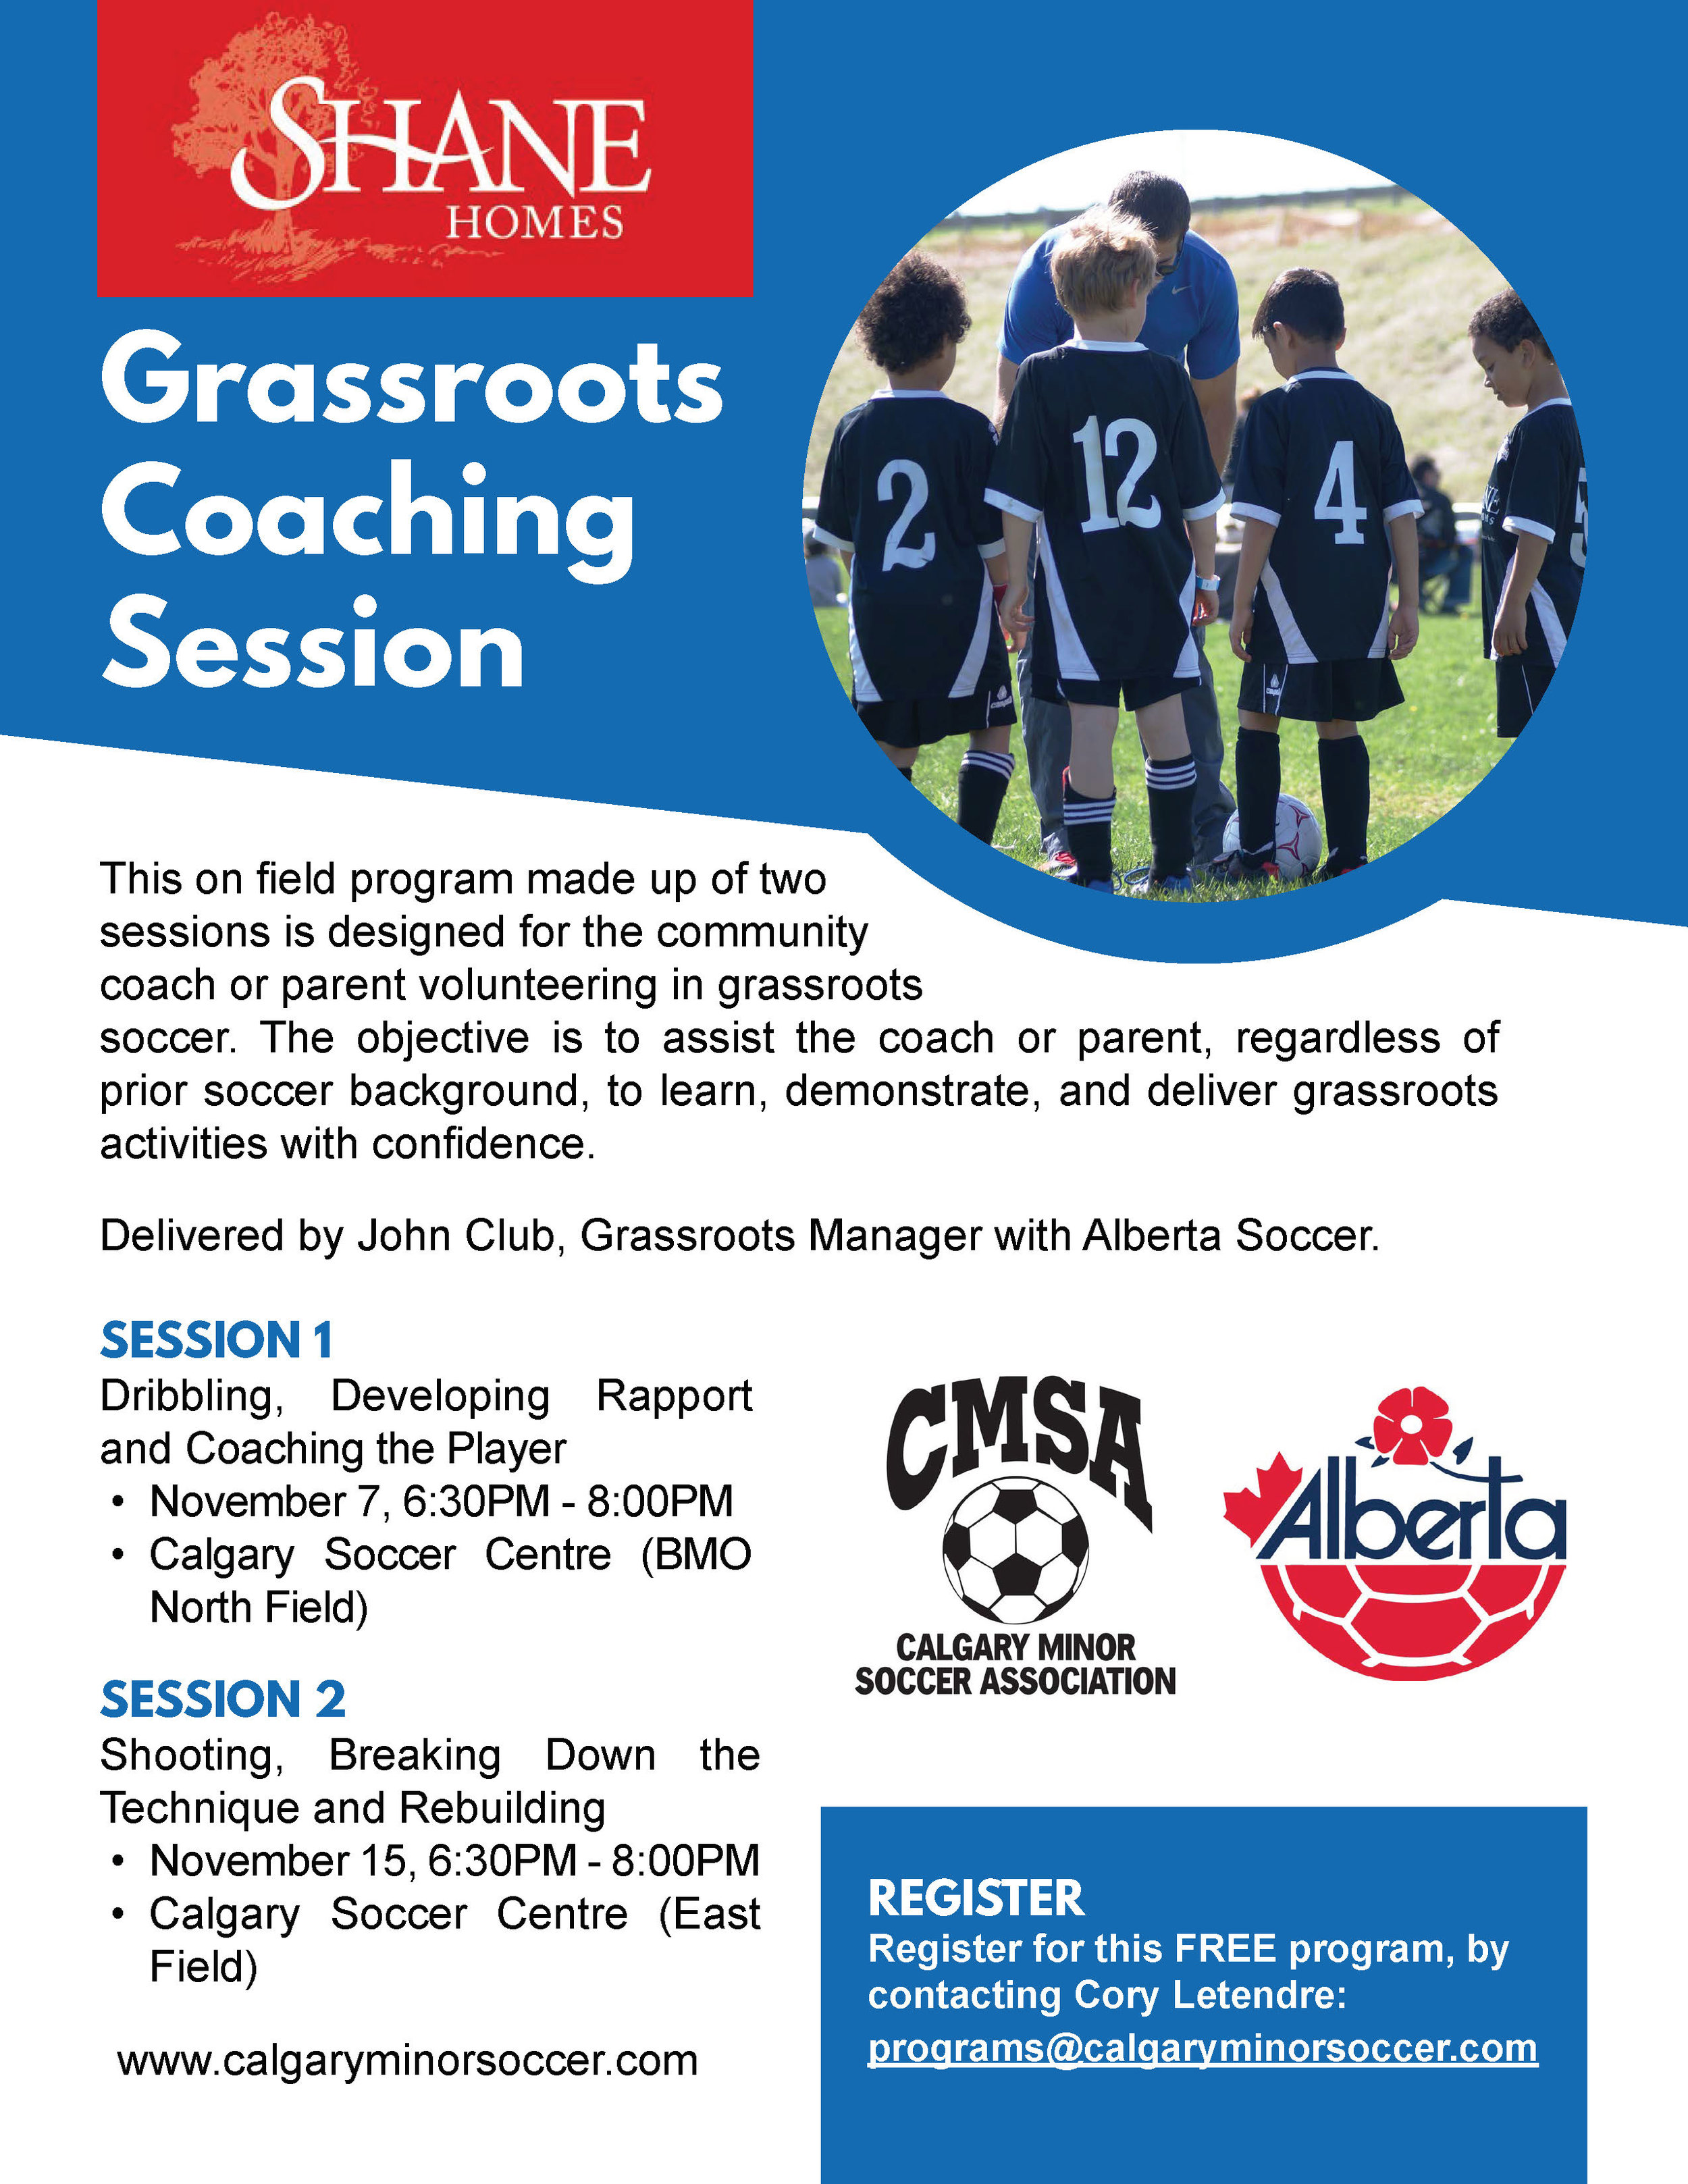 shane_homes_grassroots_coaching_session_poster.jpg